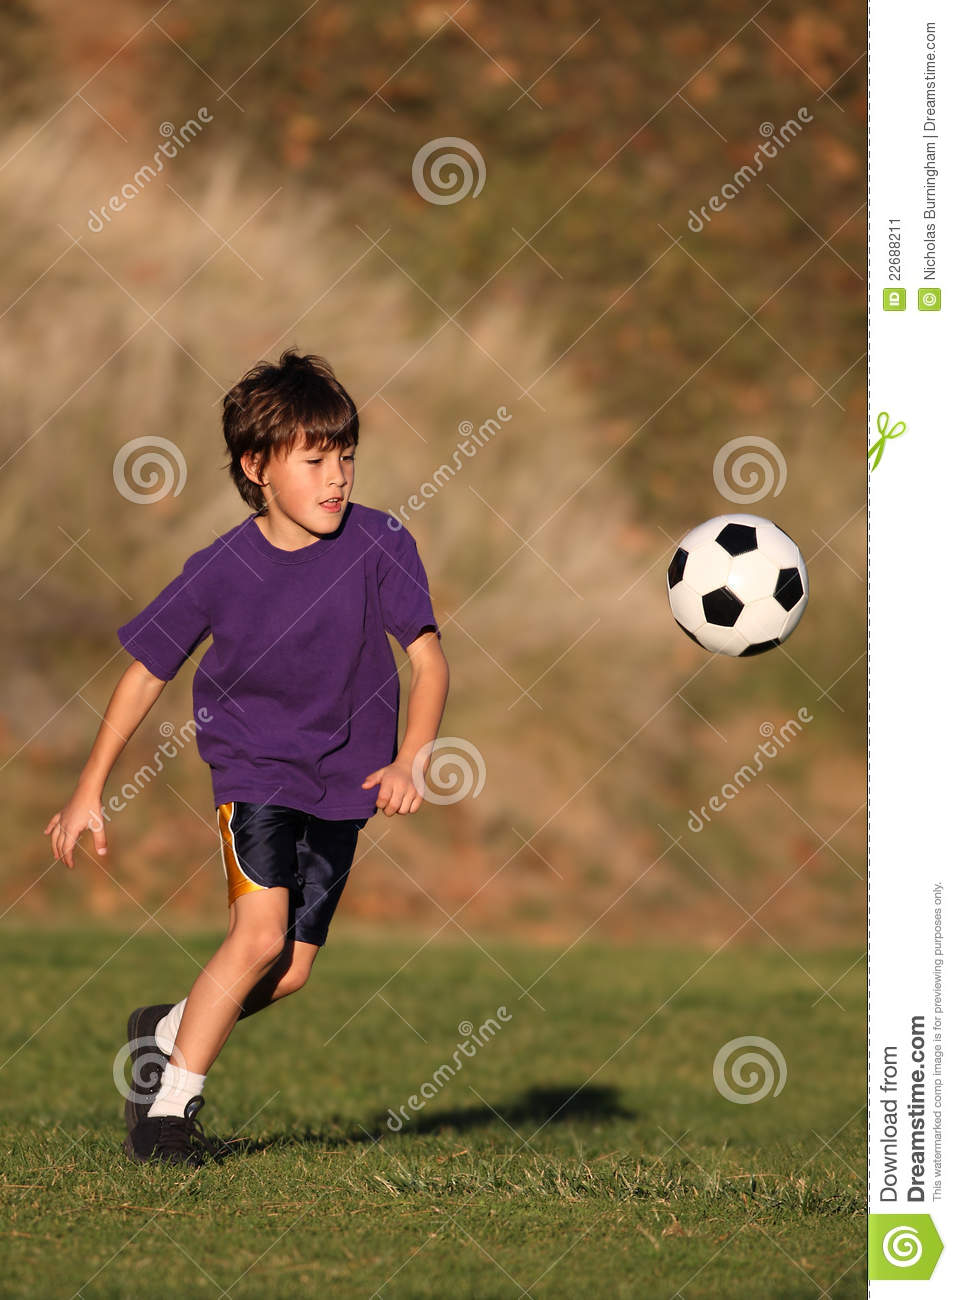 Play With Patterns Prints And Lots Of Accessories For: Boy Playing With Soccer Ball Stock Image